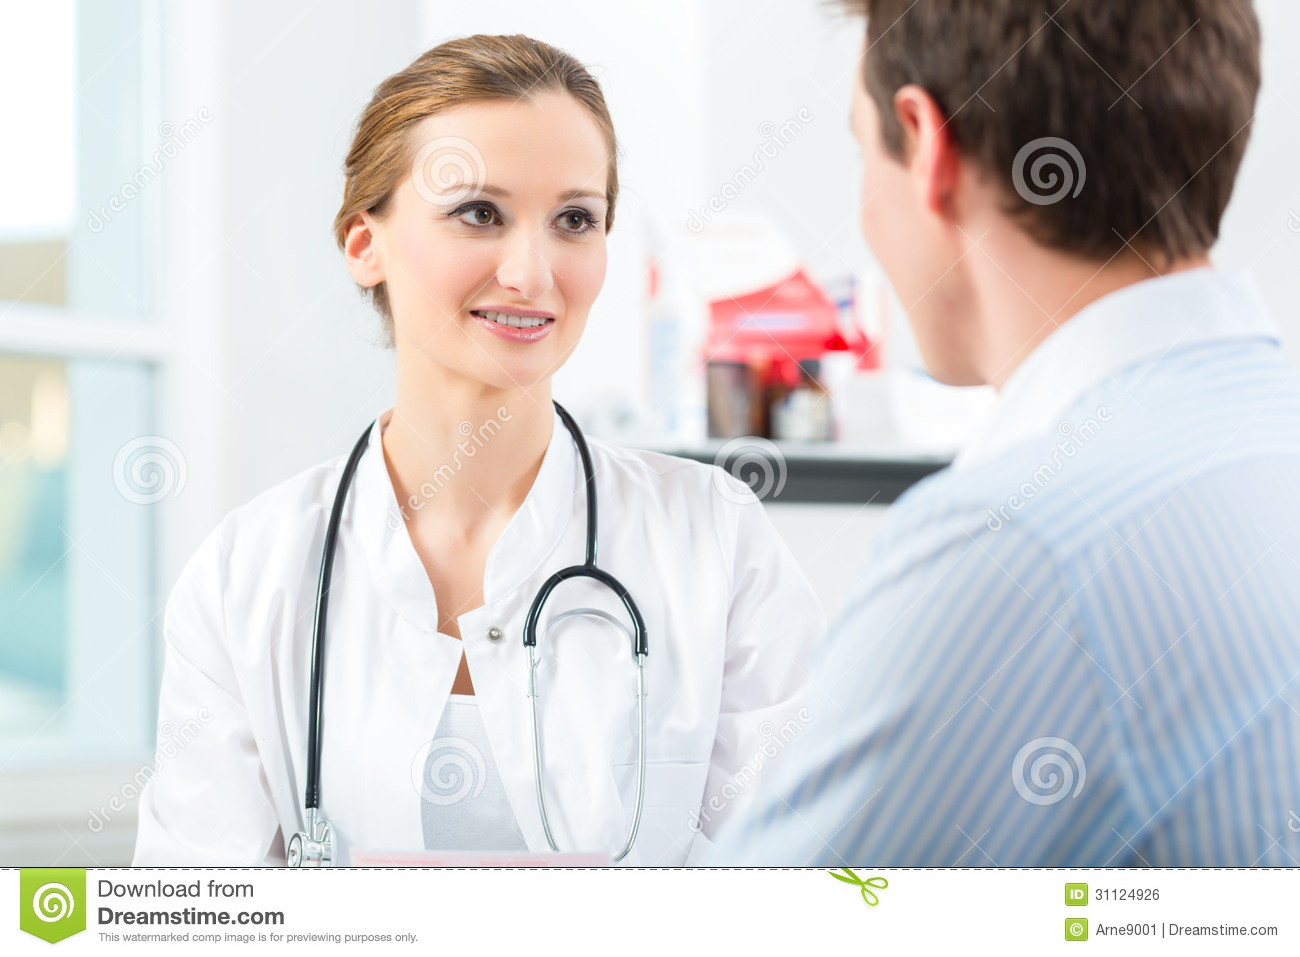 how to become a consultant doctor